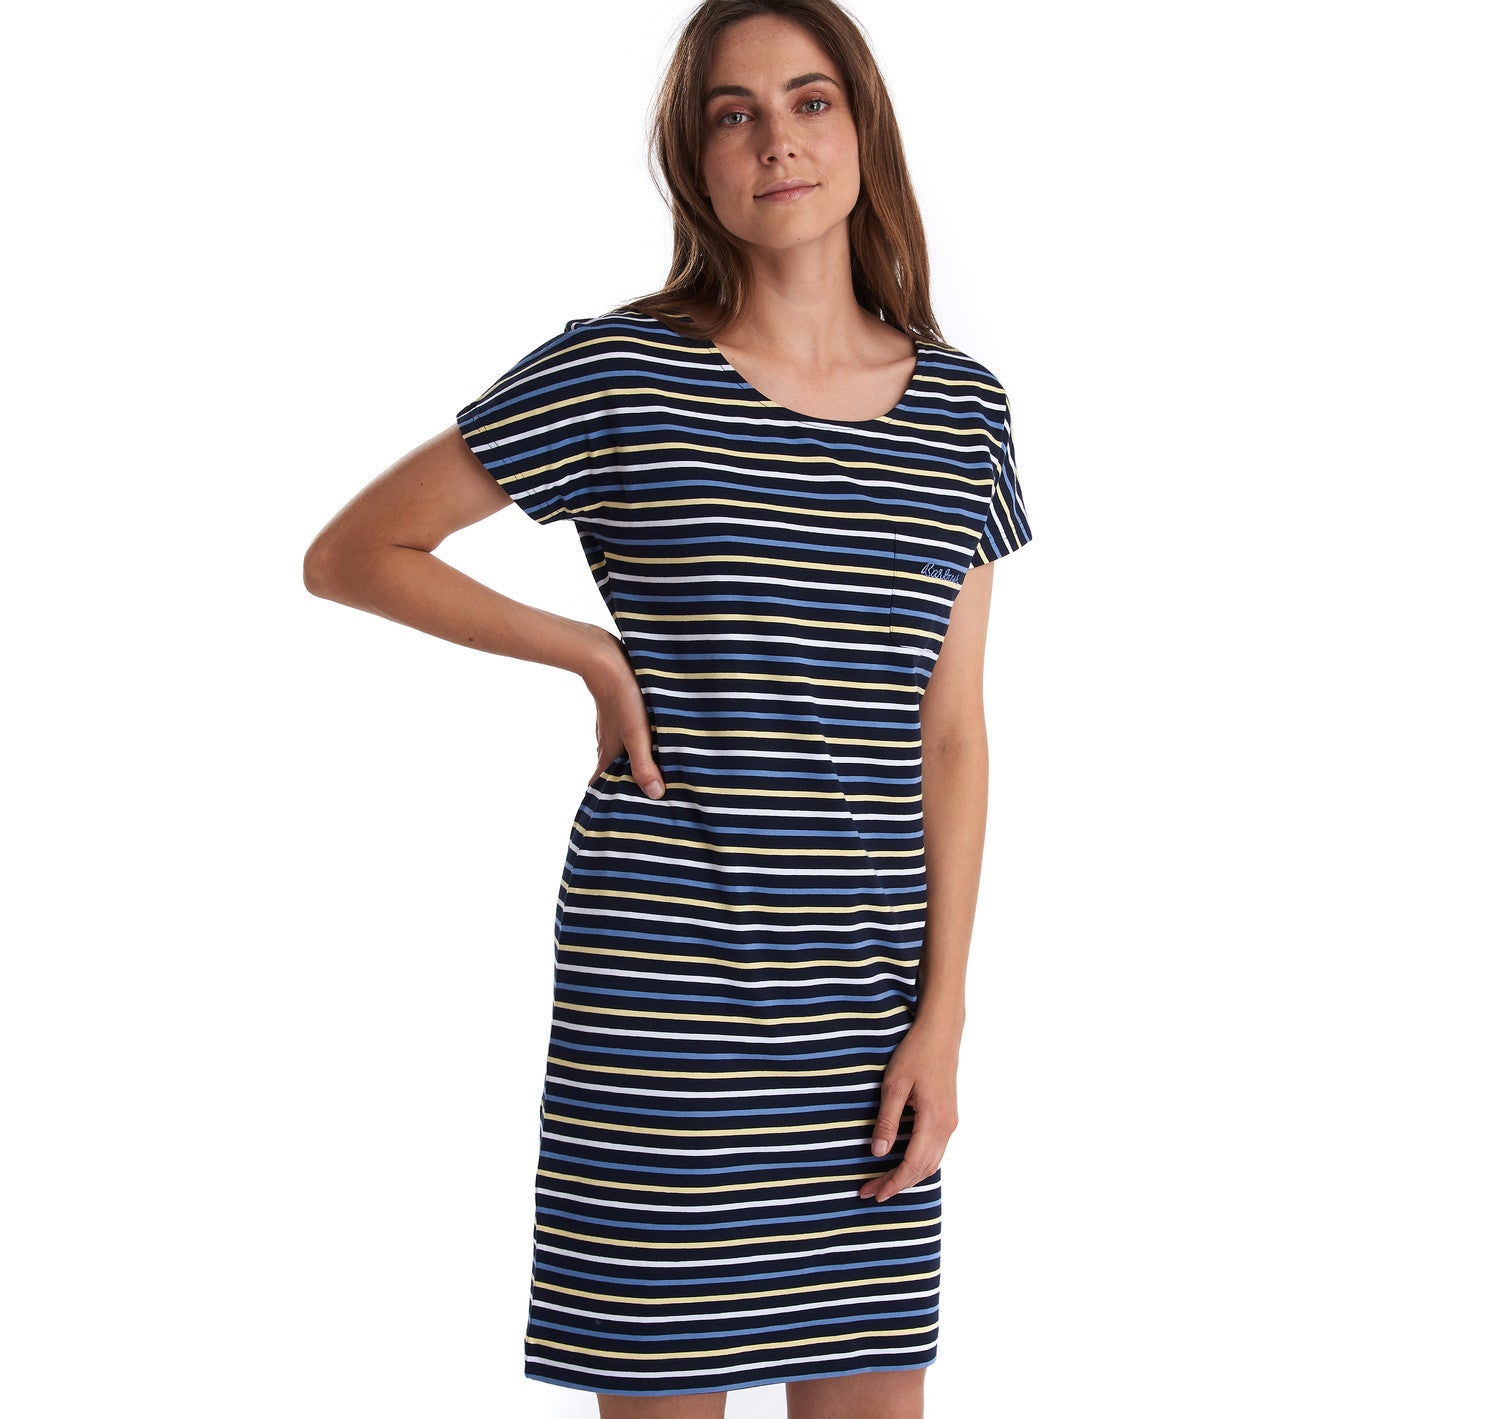 Barbour Harewood Dress for Ladies in Navy